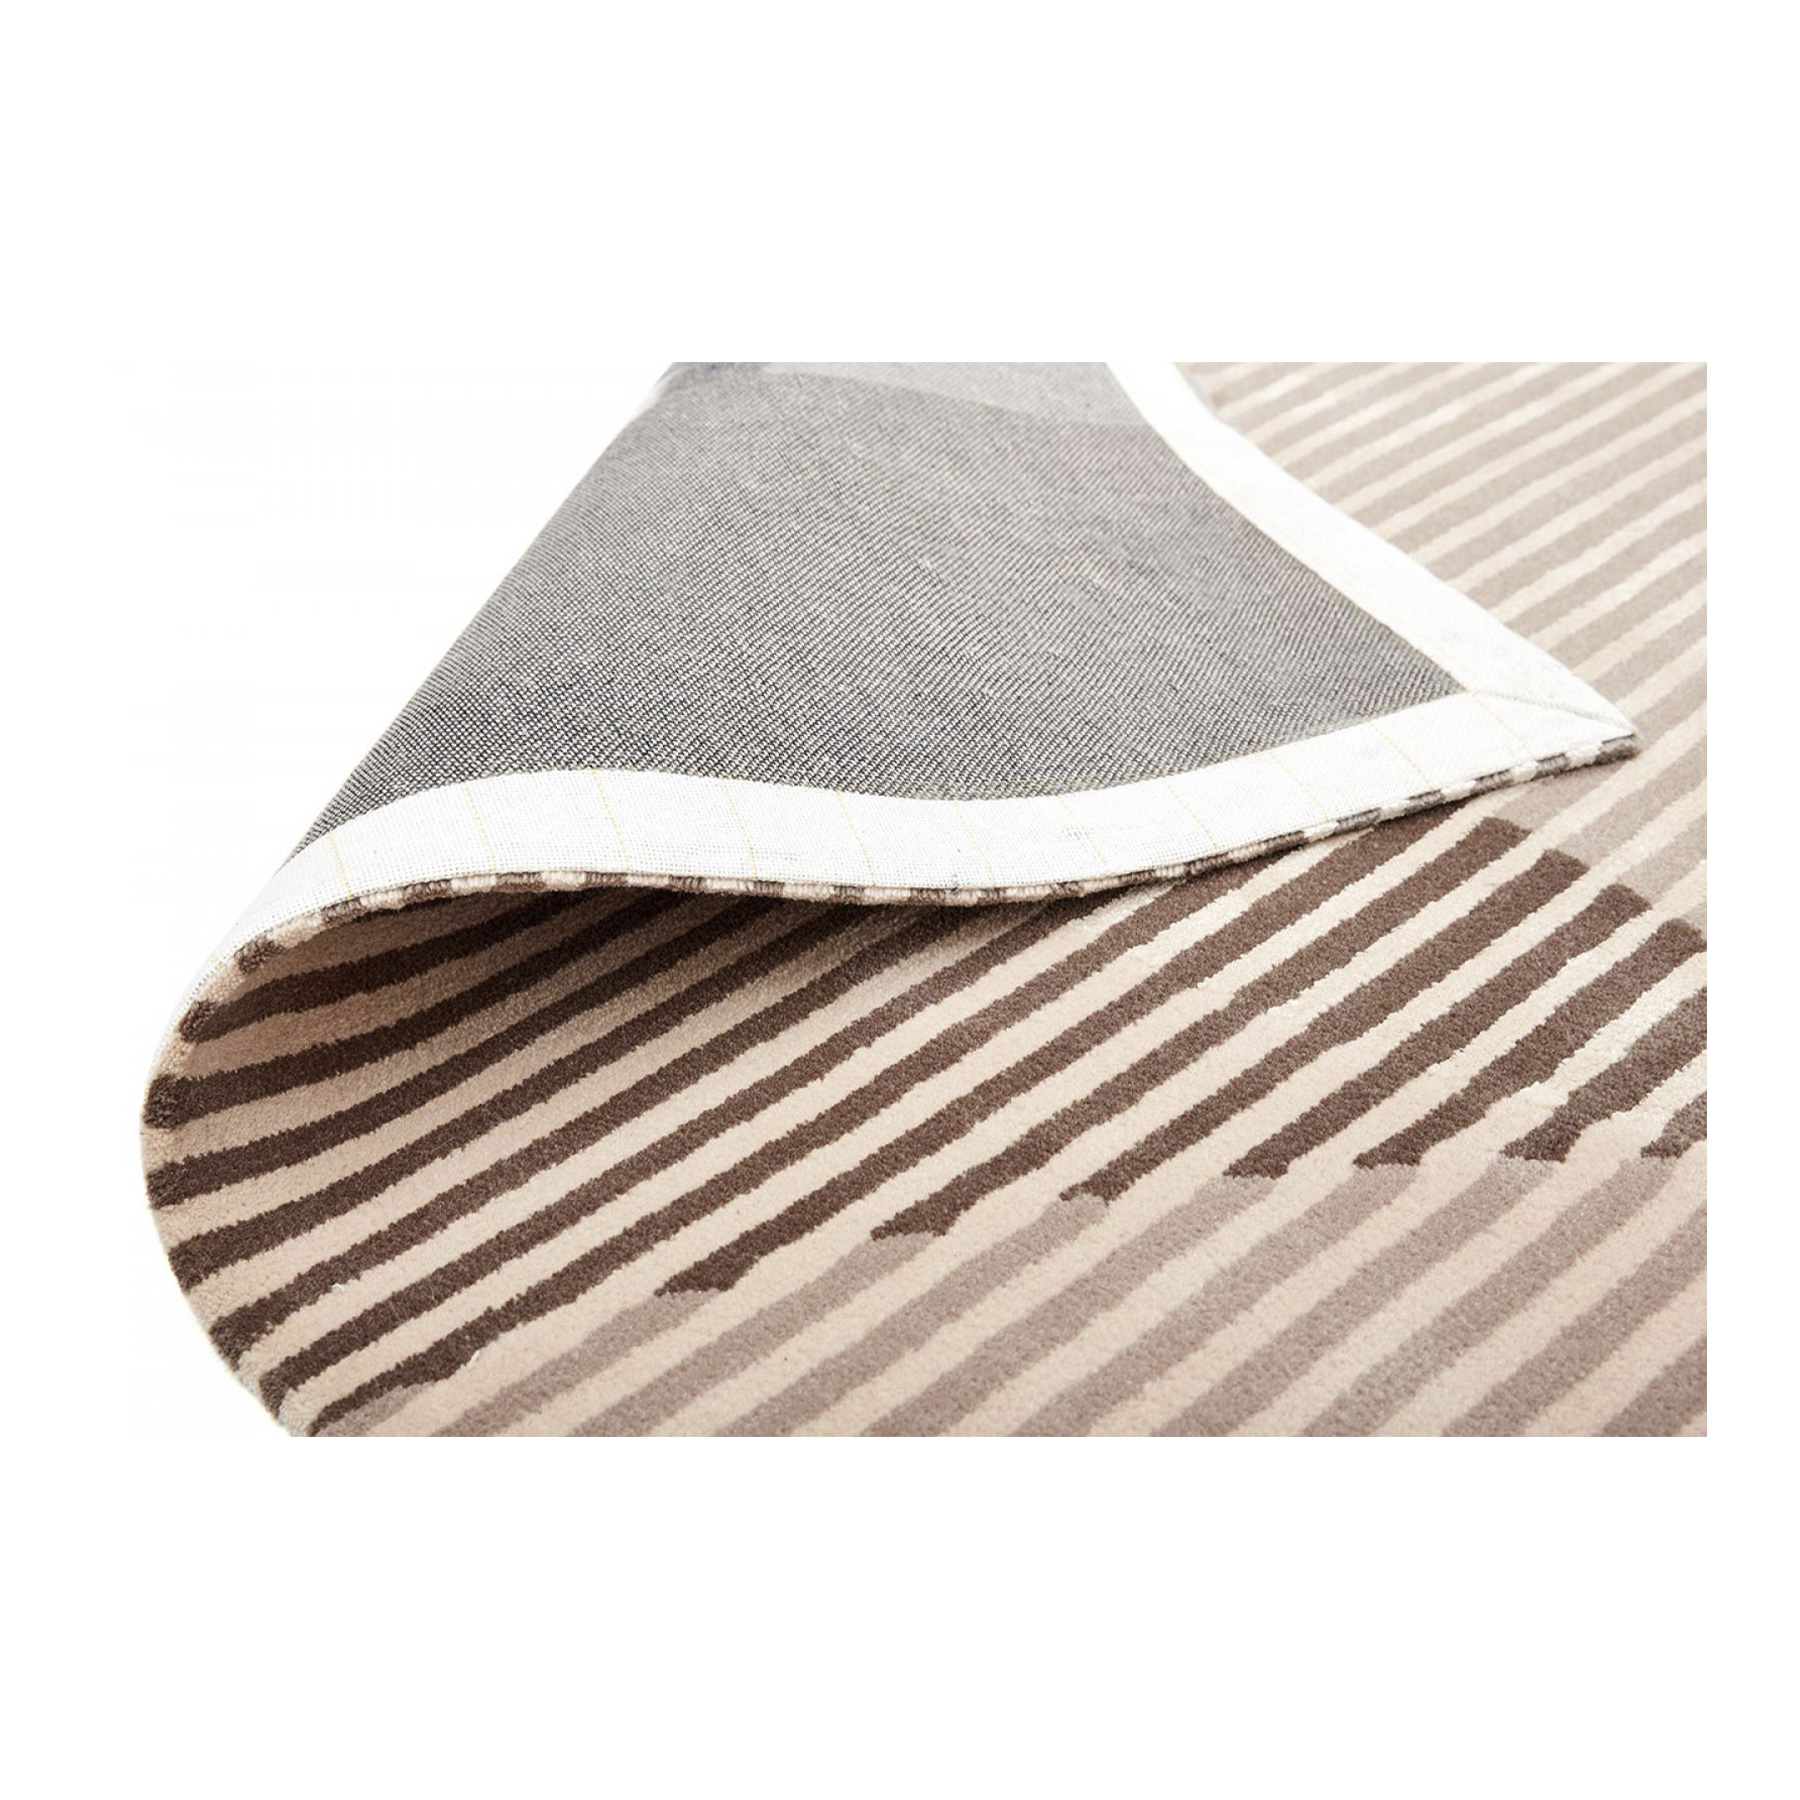 Sinking Circles Nude Rug - <p>This delicate optical rug in hand-tufted wool, designed by Polish designer Alicia Palys, brings together classic and contemporary style. It features large circles in a delicate palette of roses and grays on a background of stripes, and its dimensions are 200x290 centimeters, with 10 mm pile height. Fully customizable in color and size.</p>  | Matter of Stuff